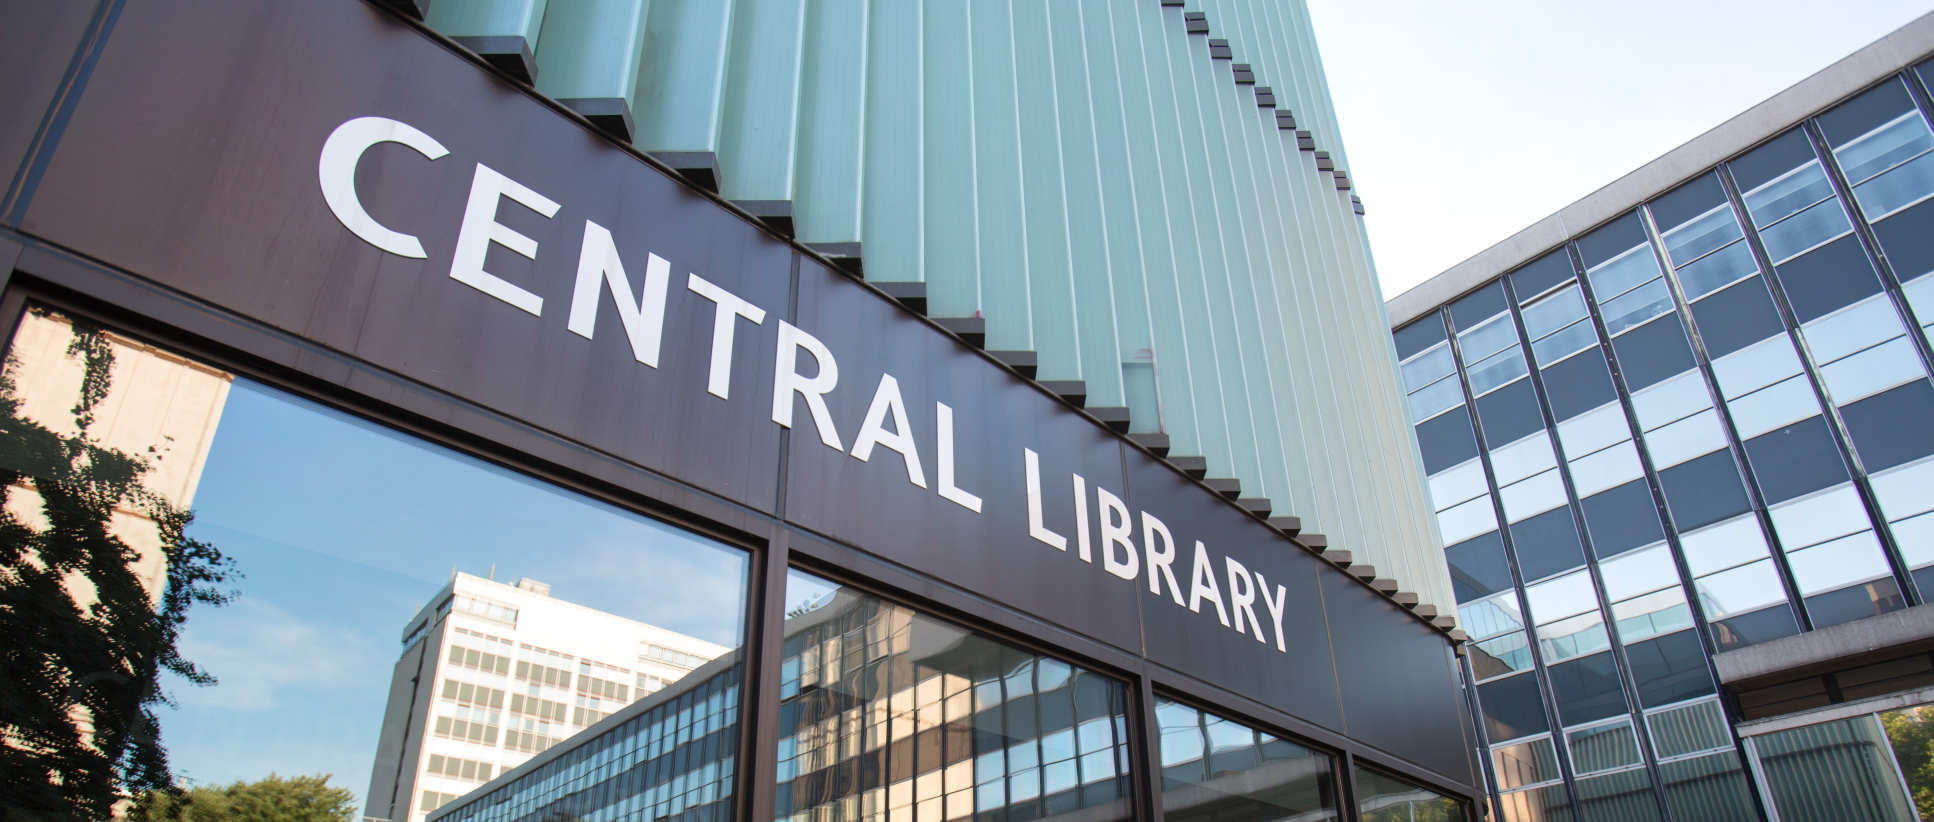 Central library entrance